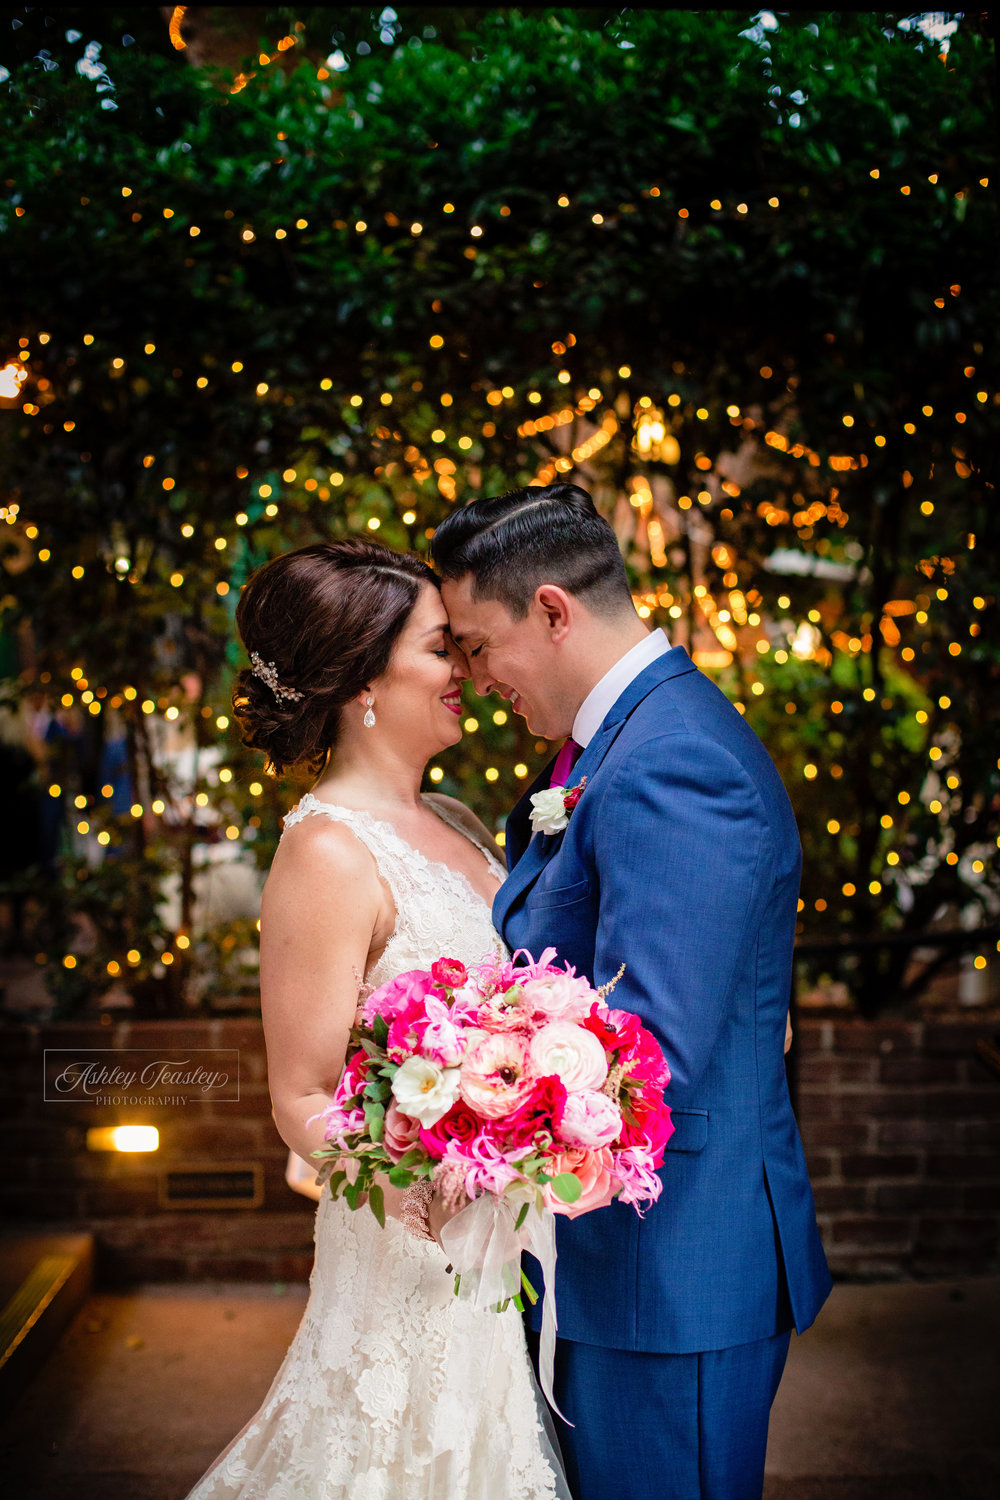 Tarrah & Francisco - The Kimpton Sawyer Hotel - The Firehouse Old Sac - Sacramento Wedding Photographer - Ashley Teasley Photography (37 of 118).jpg